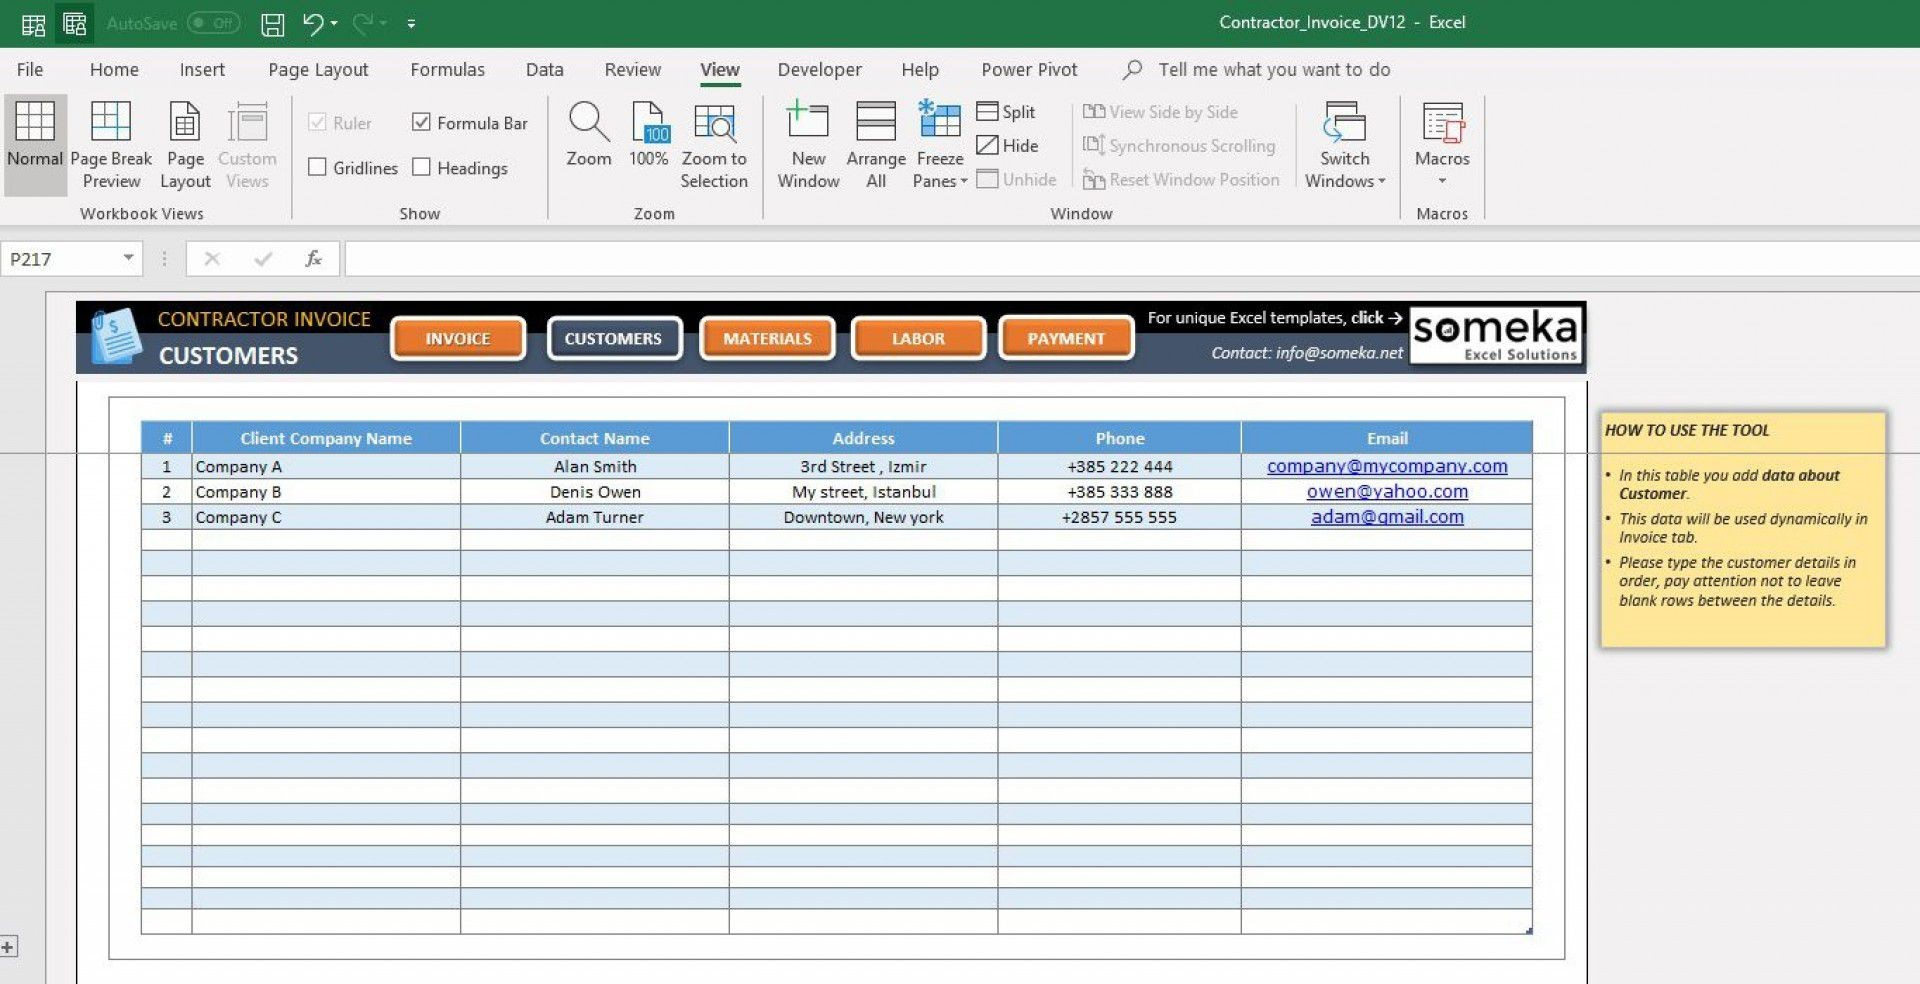 000 Impressive Excel Customer Database Template Sample  Xl Free Download1920